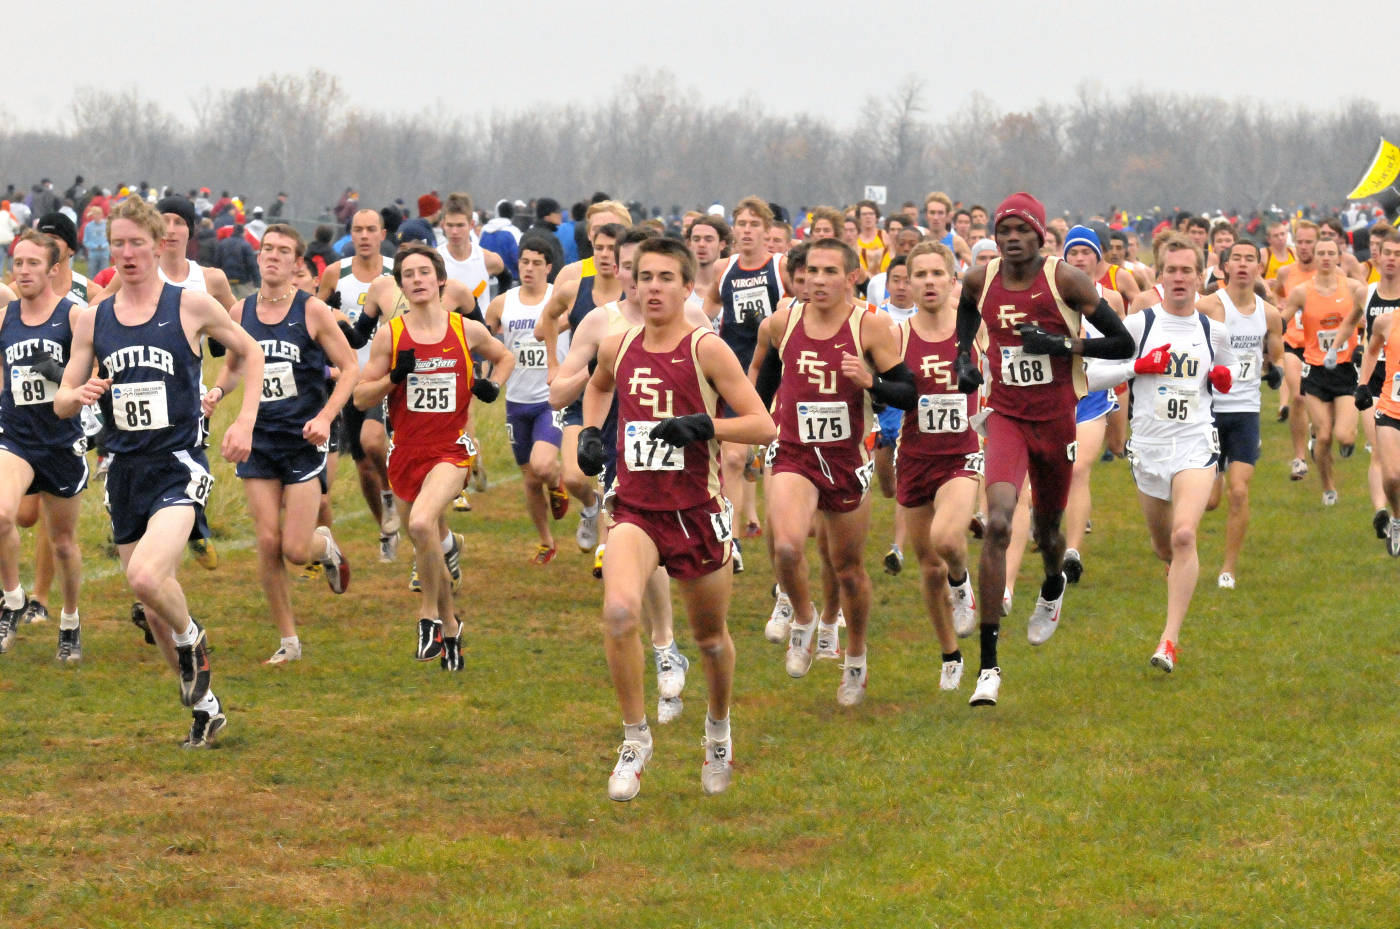 Florida State men's cross country team at nationals.